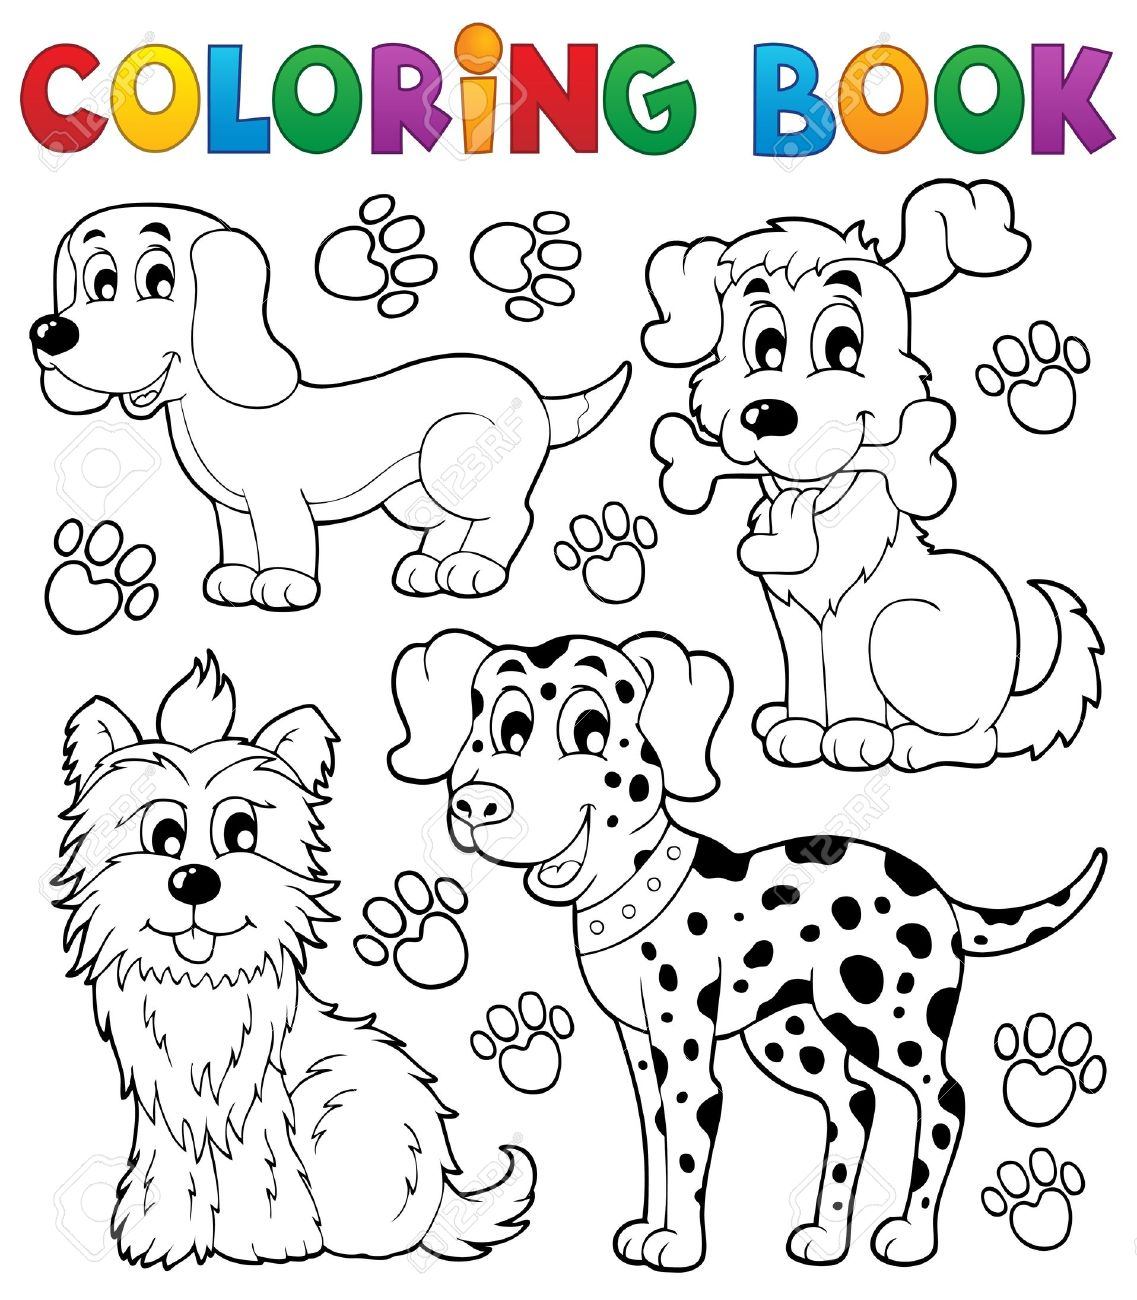 Coloring pages yorkie - Yorkshire Terrier Coloring Book Dog Theme